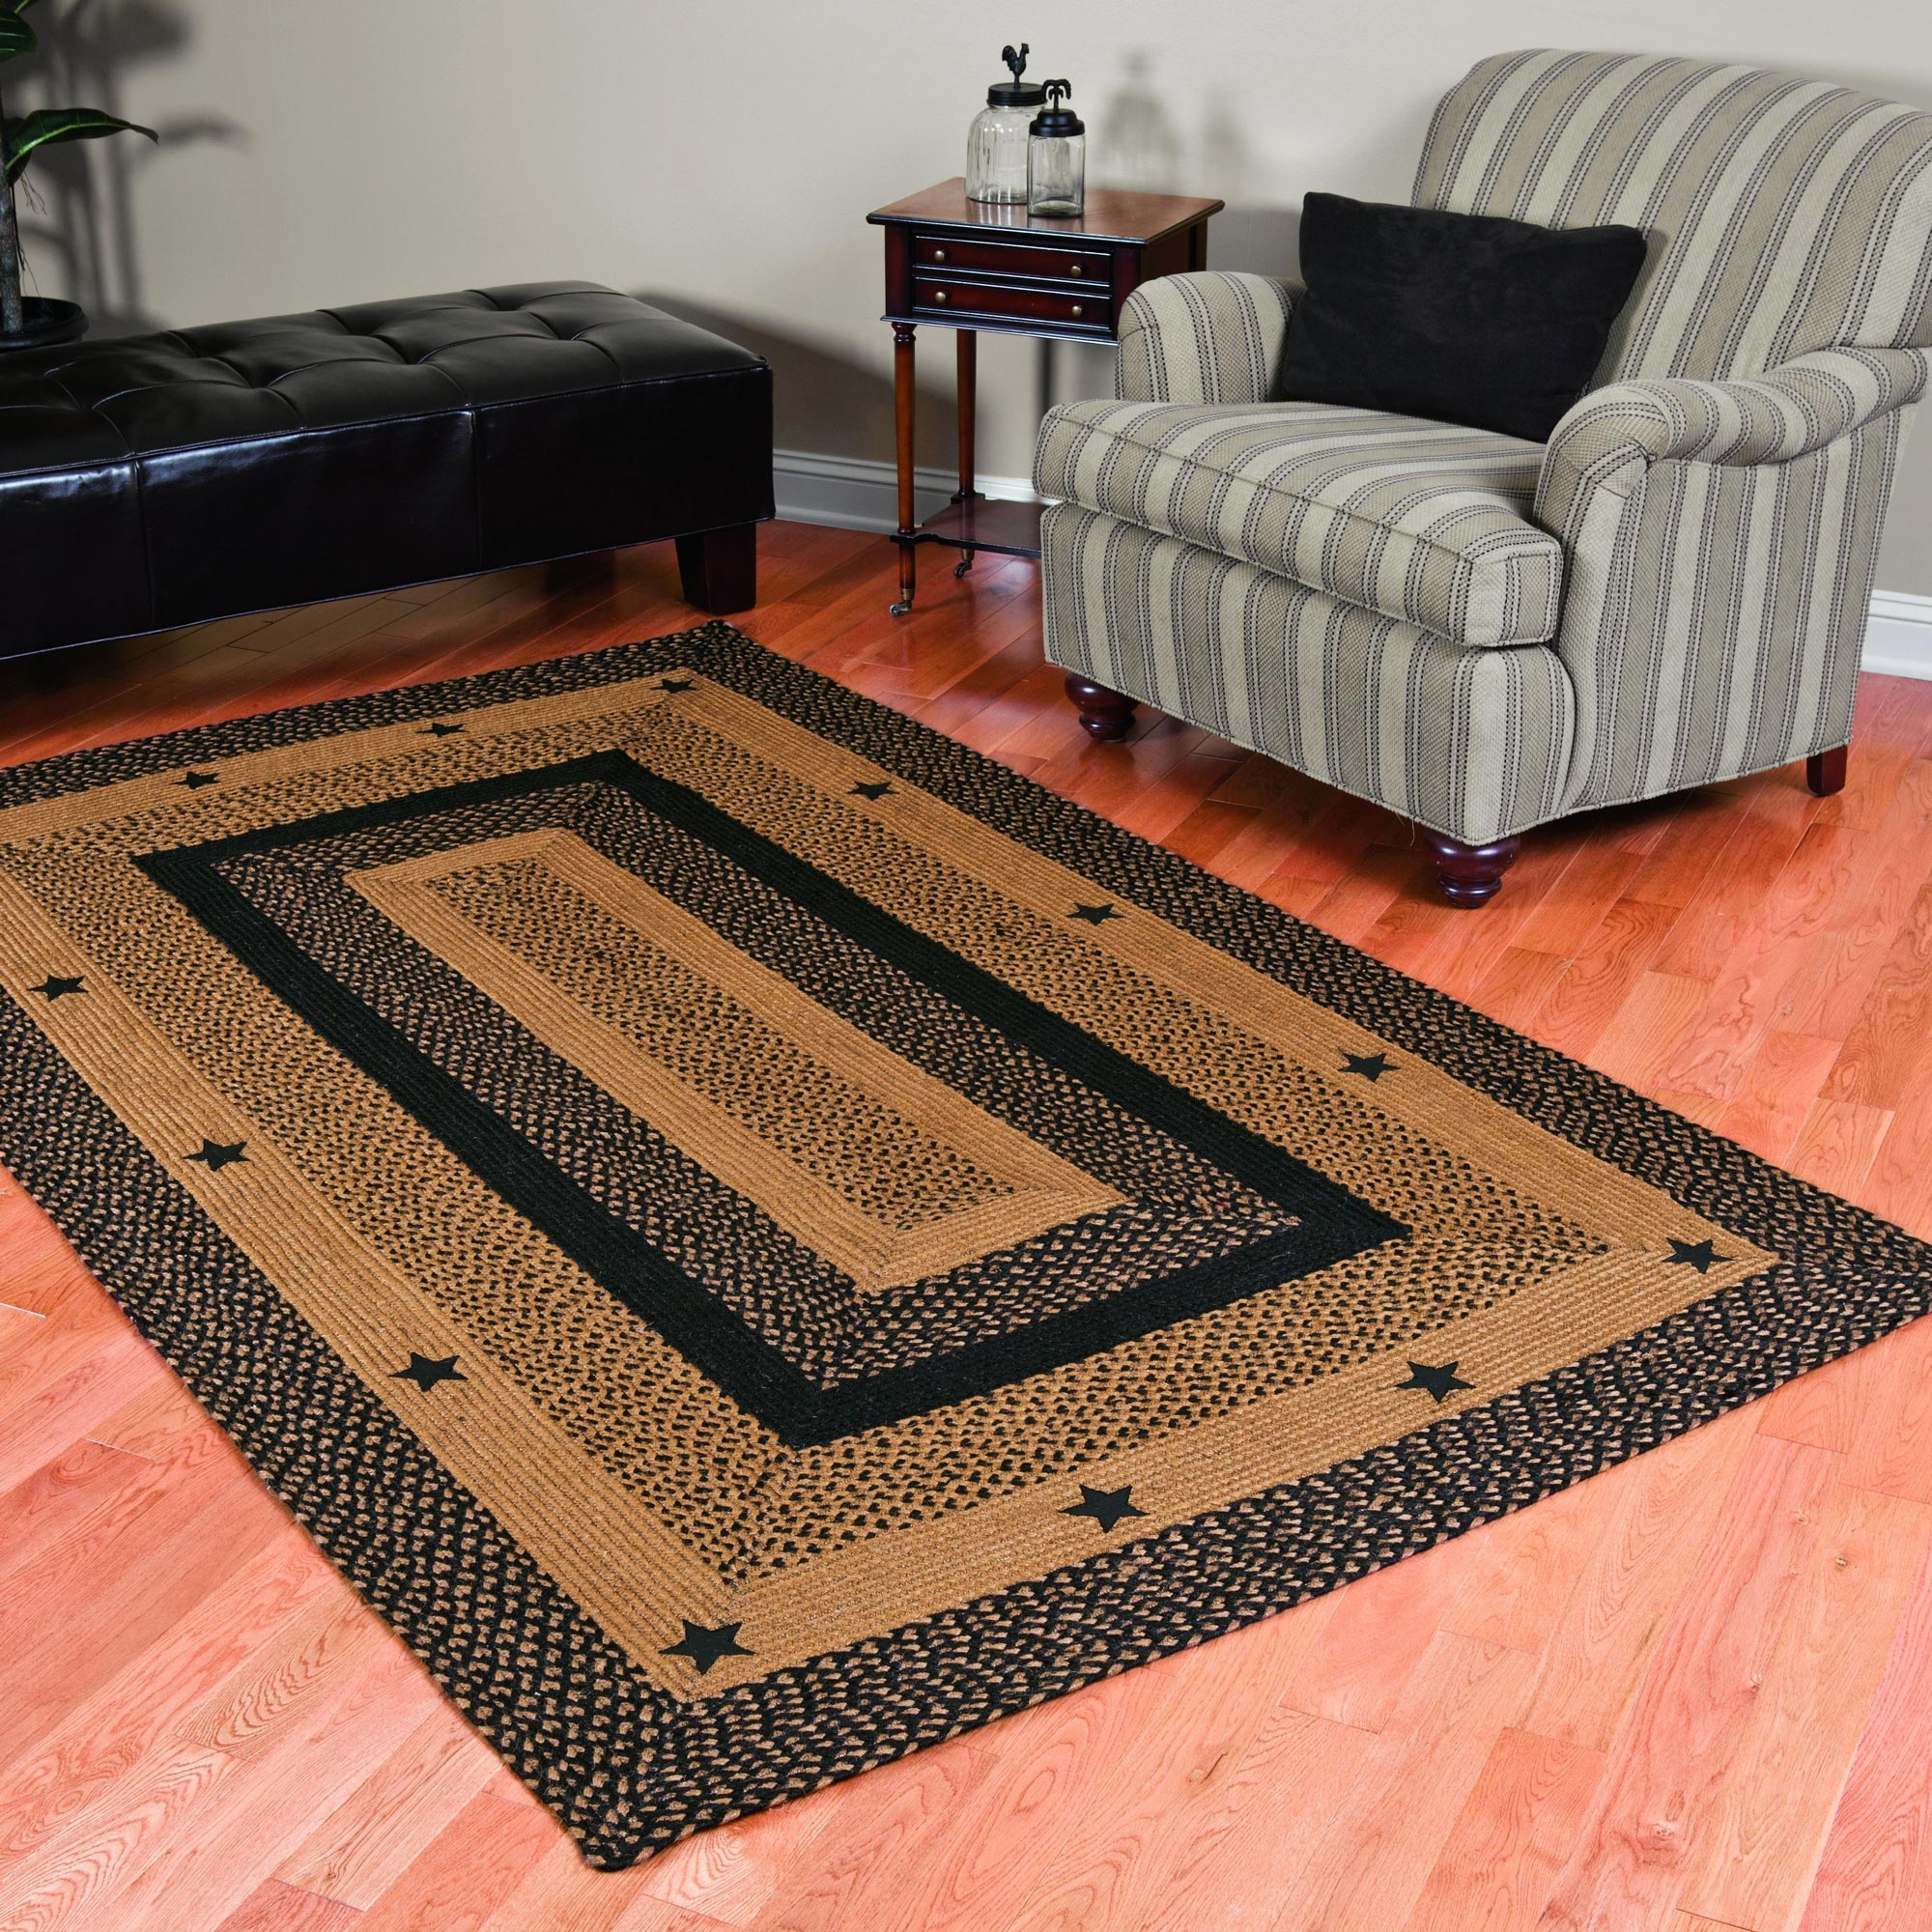 Rugs Cozy 4×6 Area Rugs For Your Interior Floor Accessories Ideas With Regard To [keyword (#9 of 11)